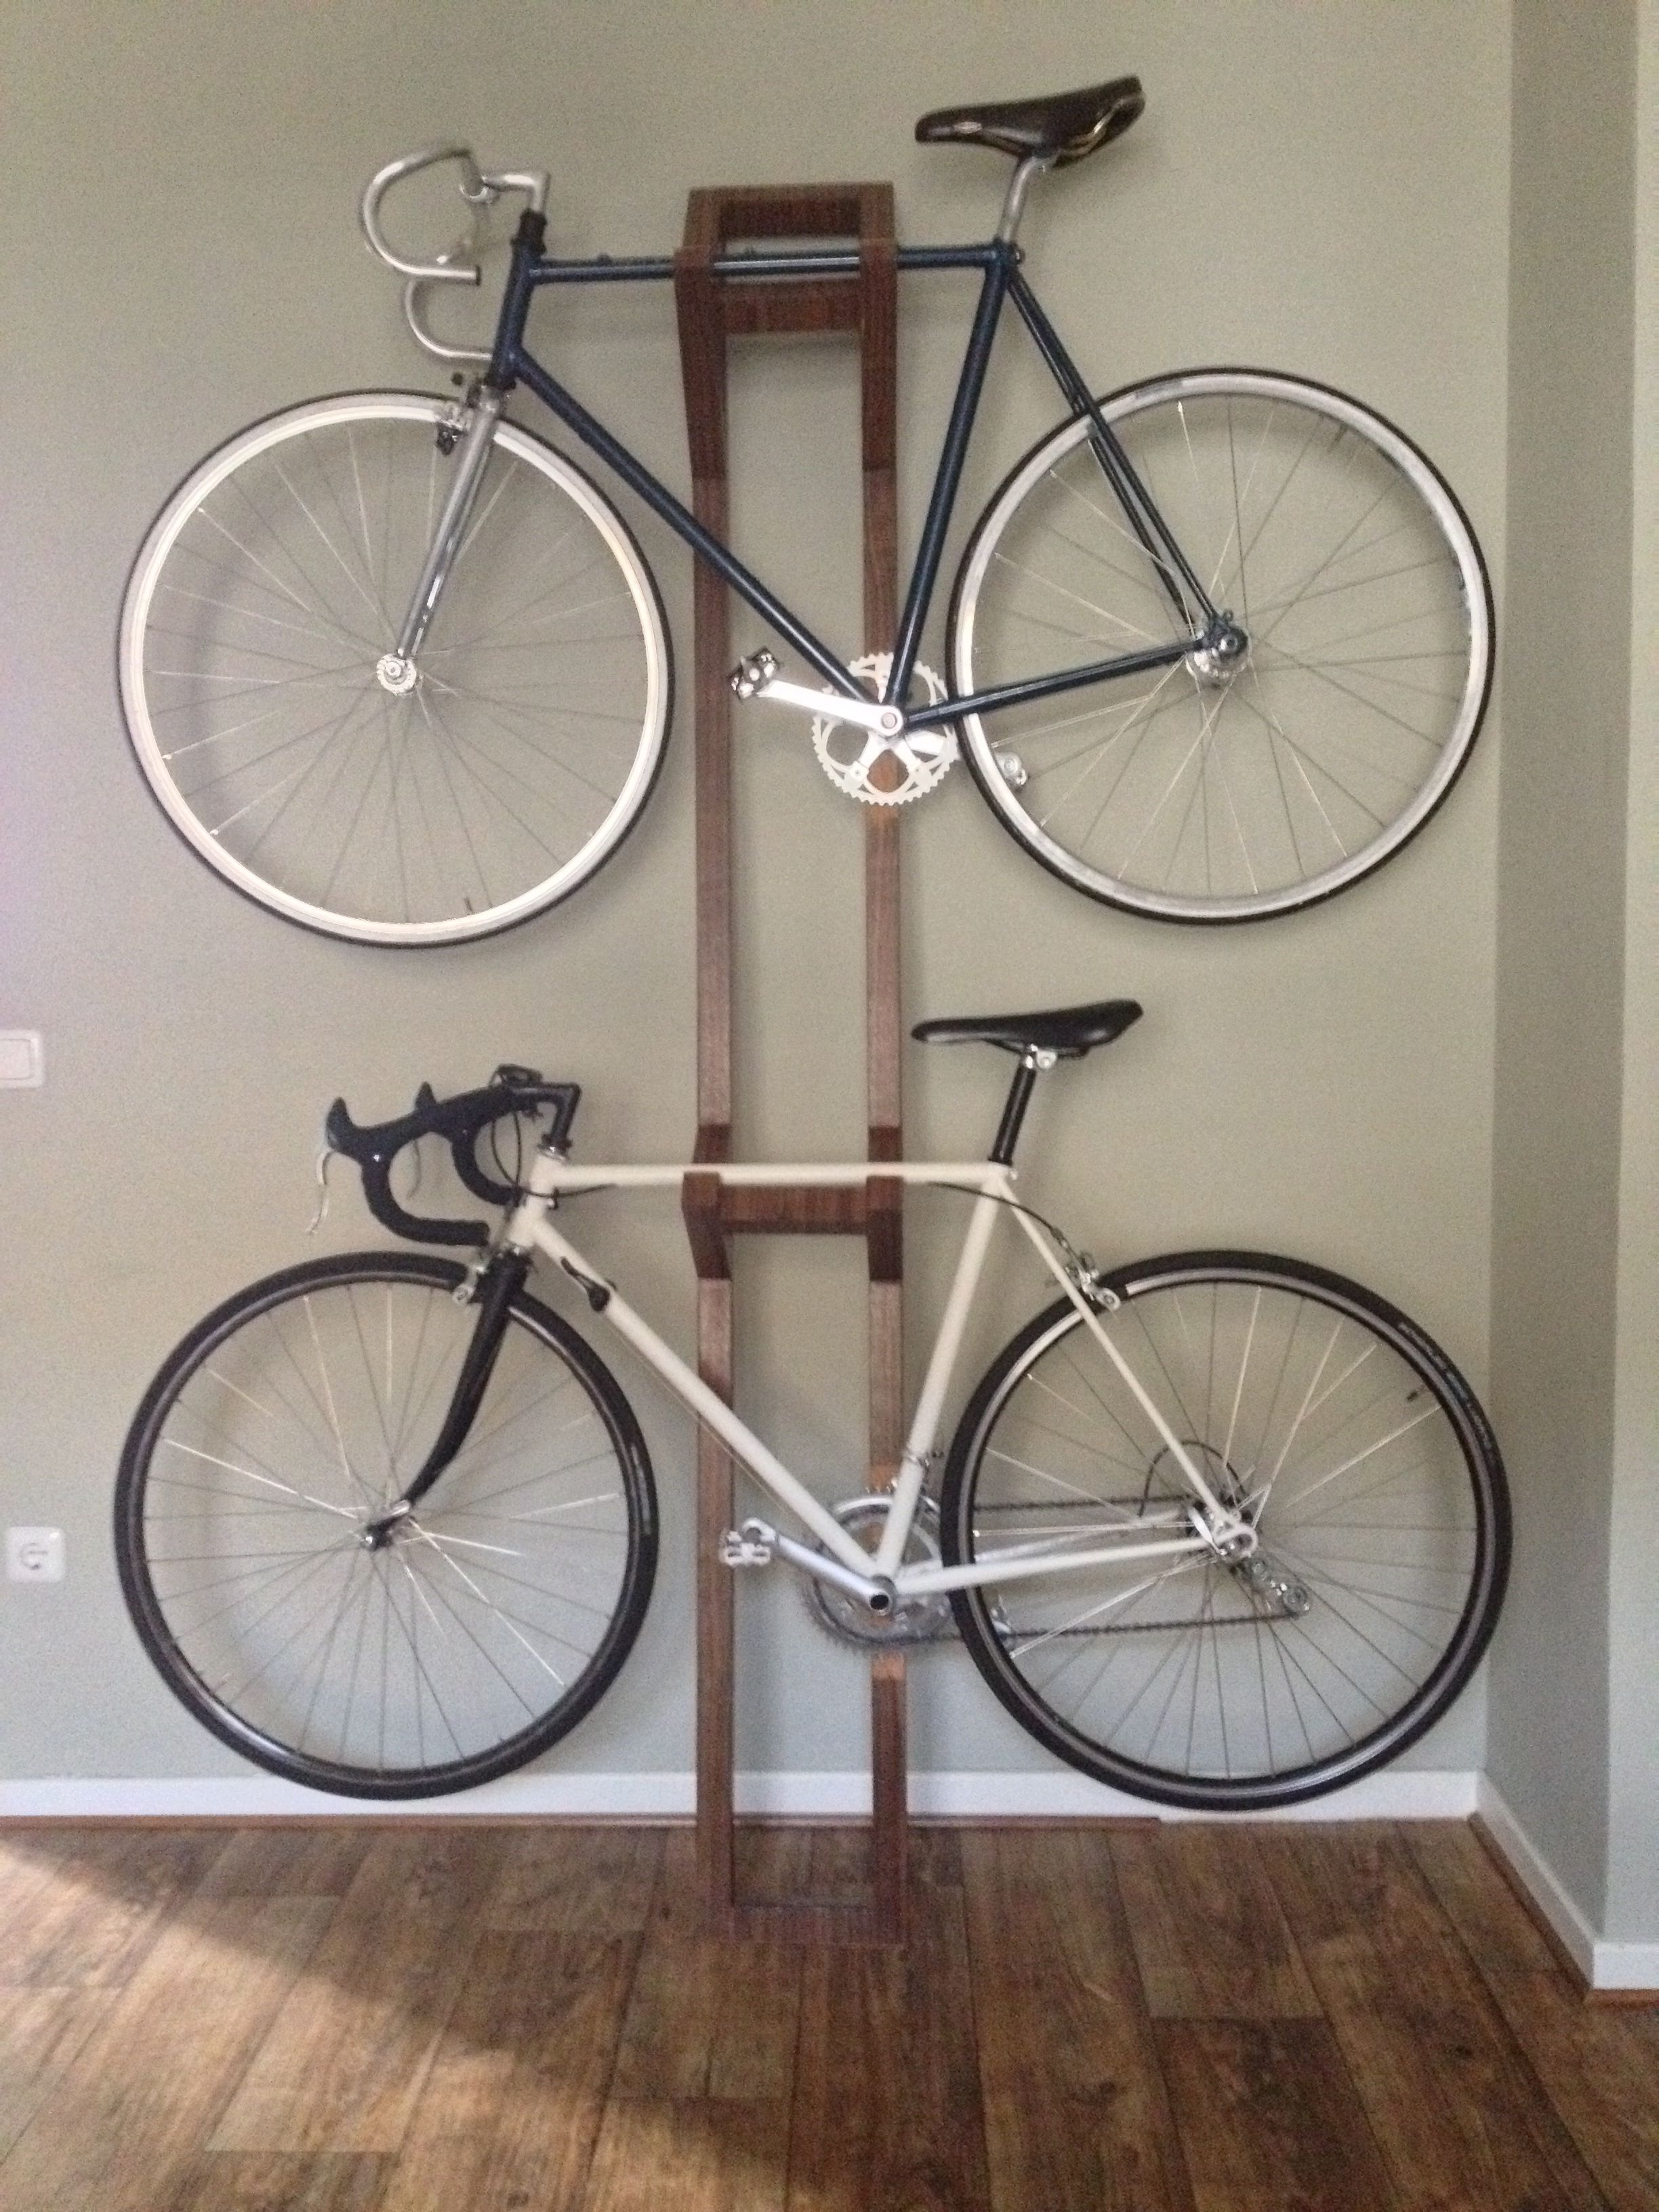 Handmade Bike Hanger Ii Bike Hanger Diy Bike Rack Bike Storage Apartment